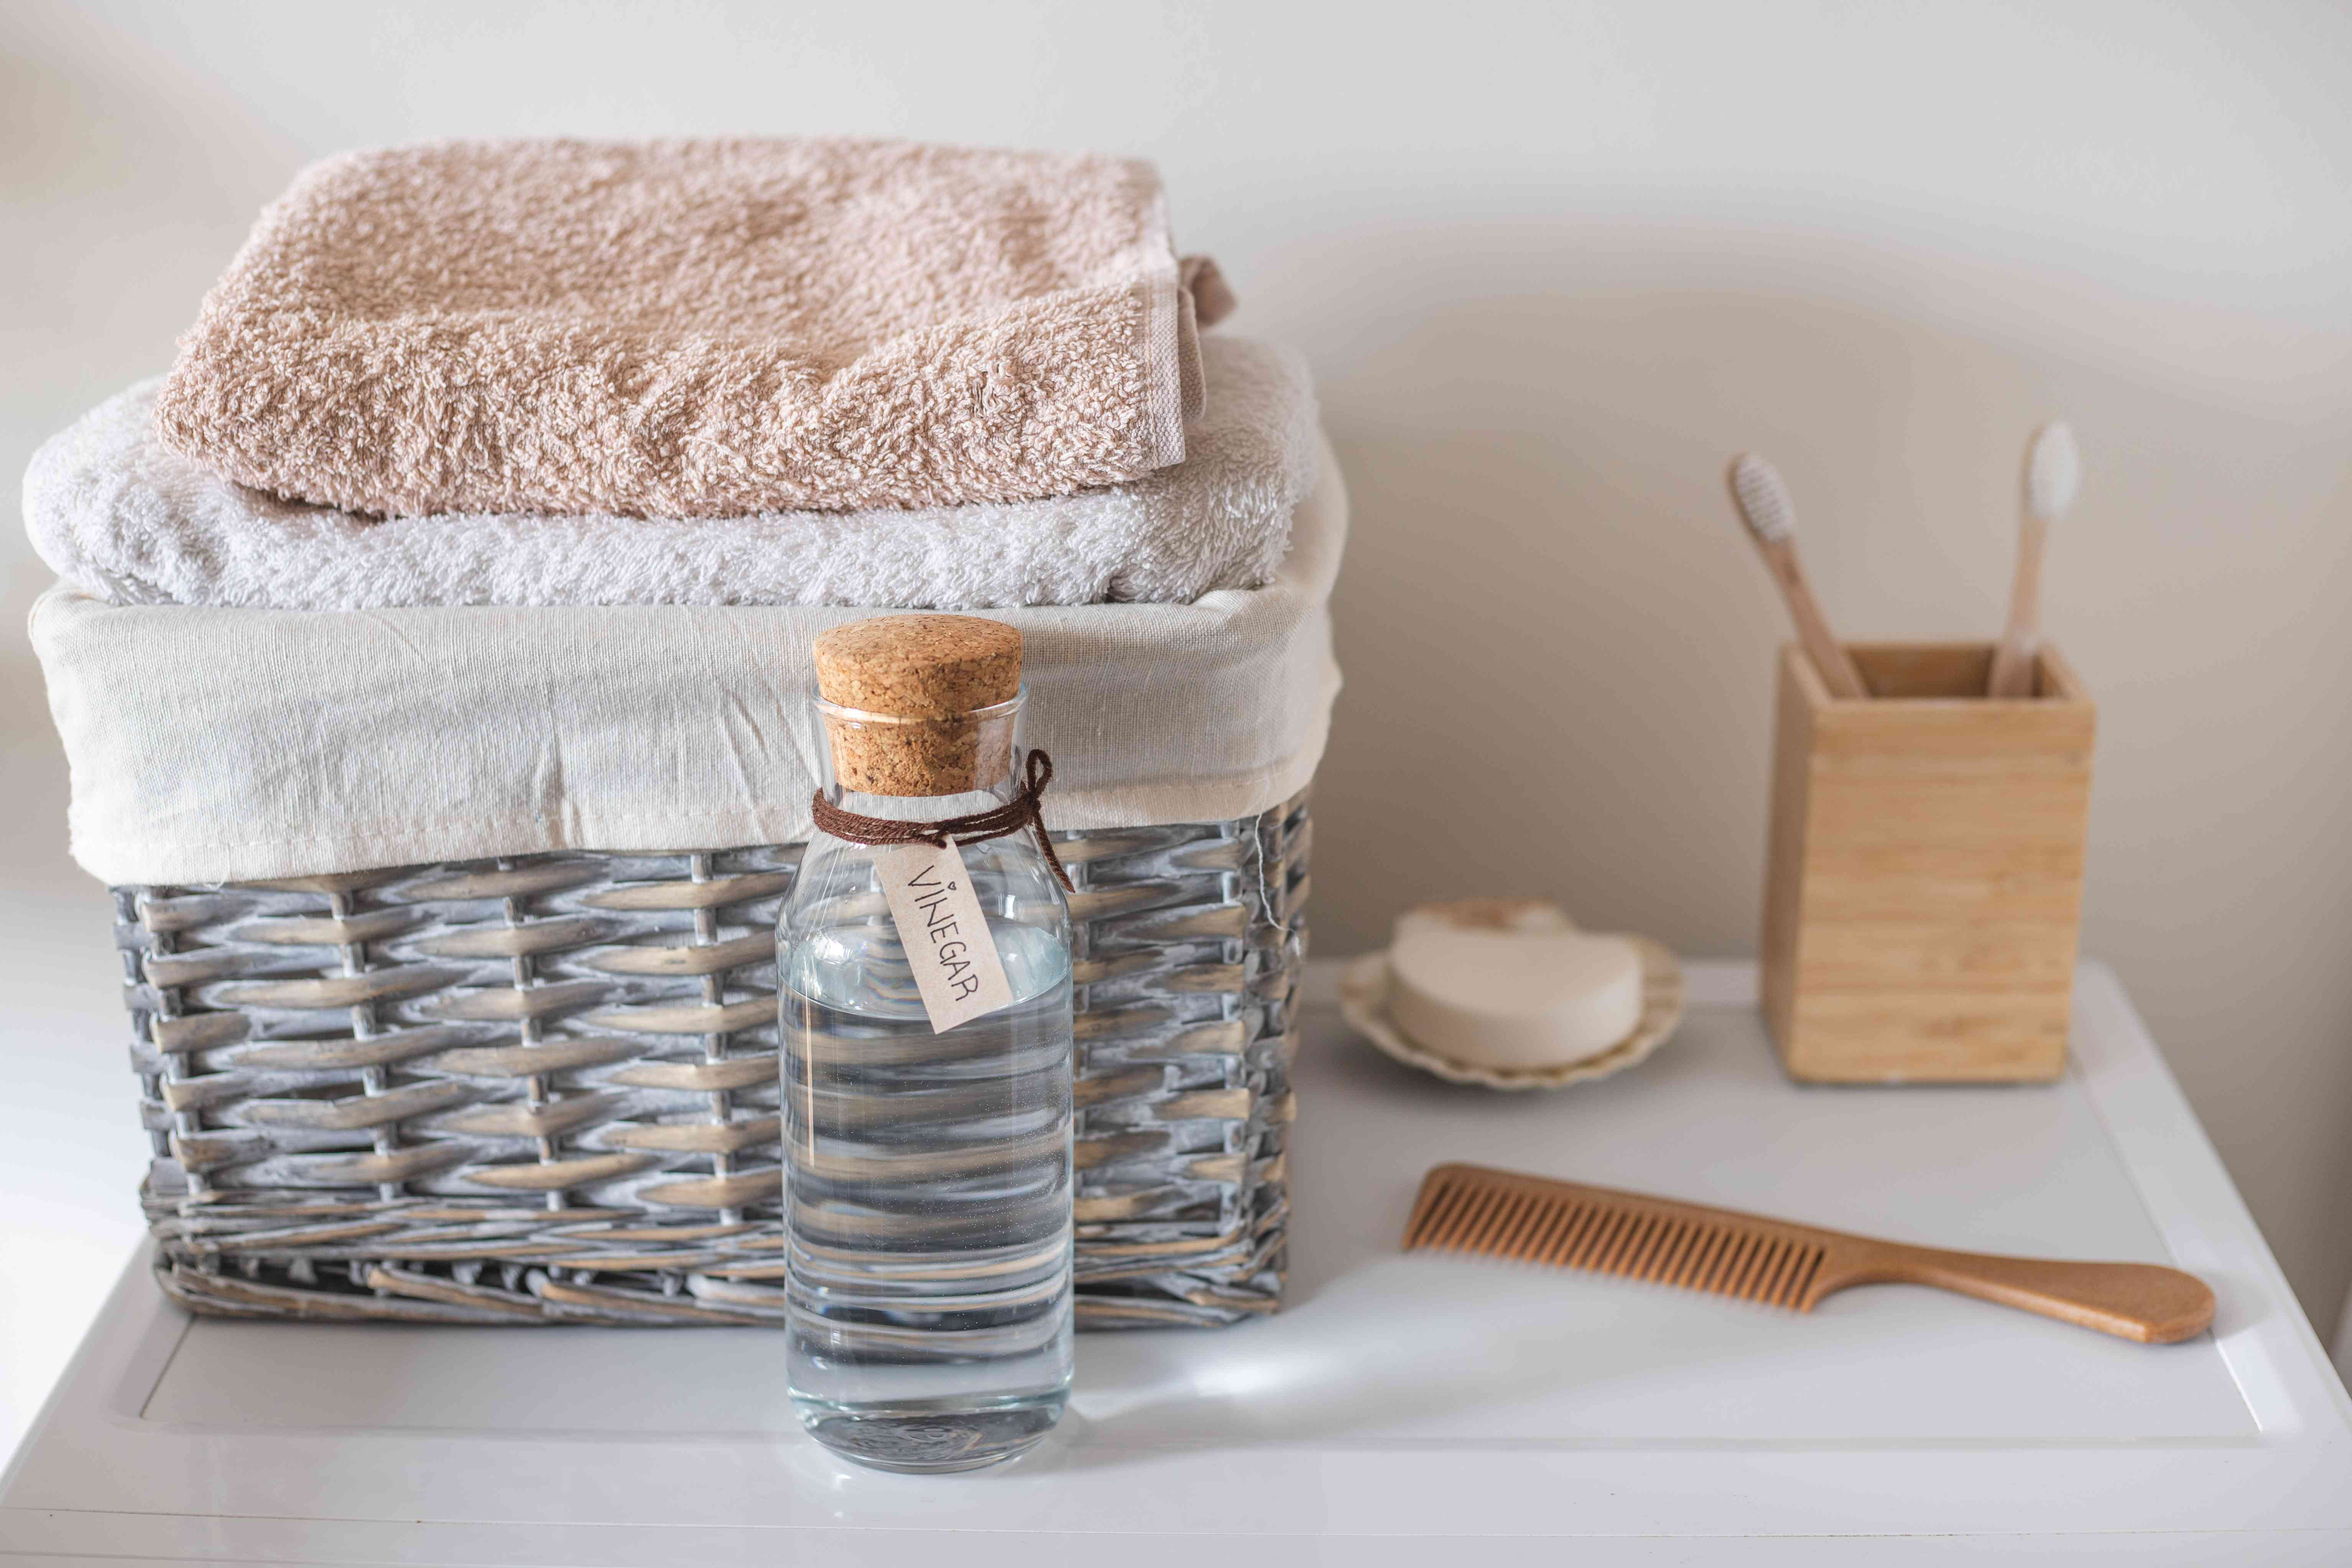 top of washing machine with glass bottle of white vinegar, laundry basket, comb, toothbrush